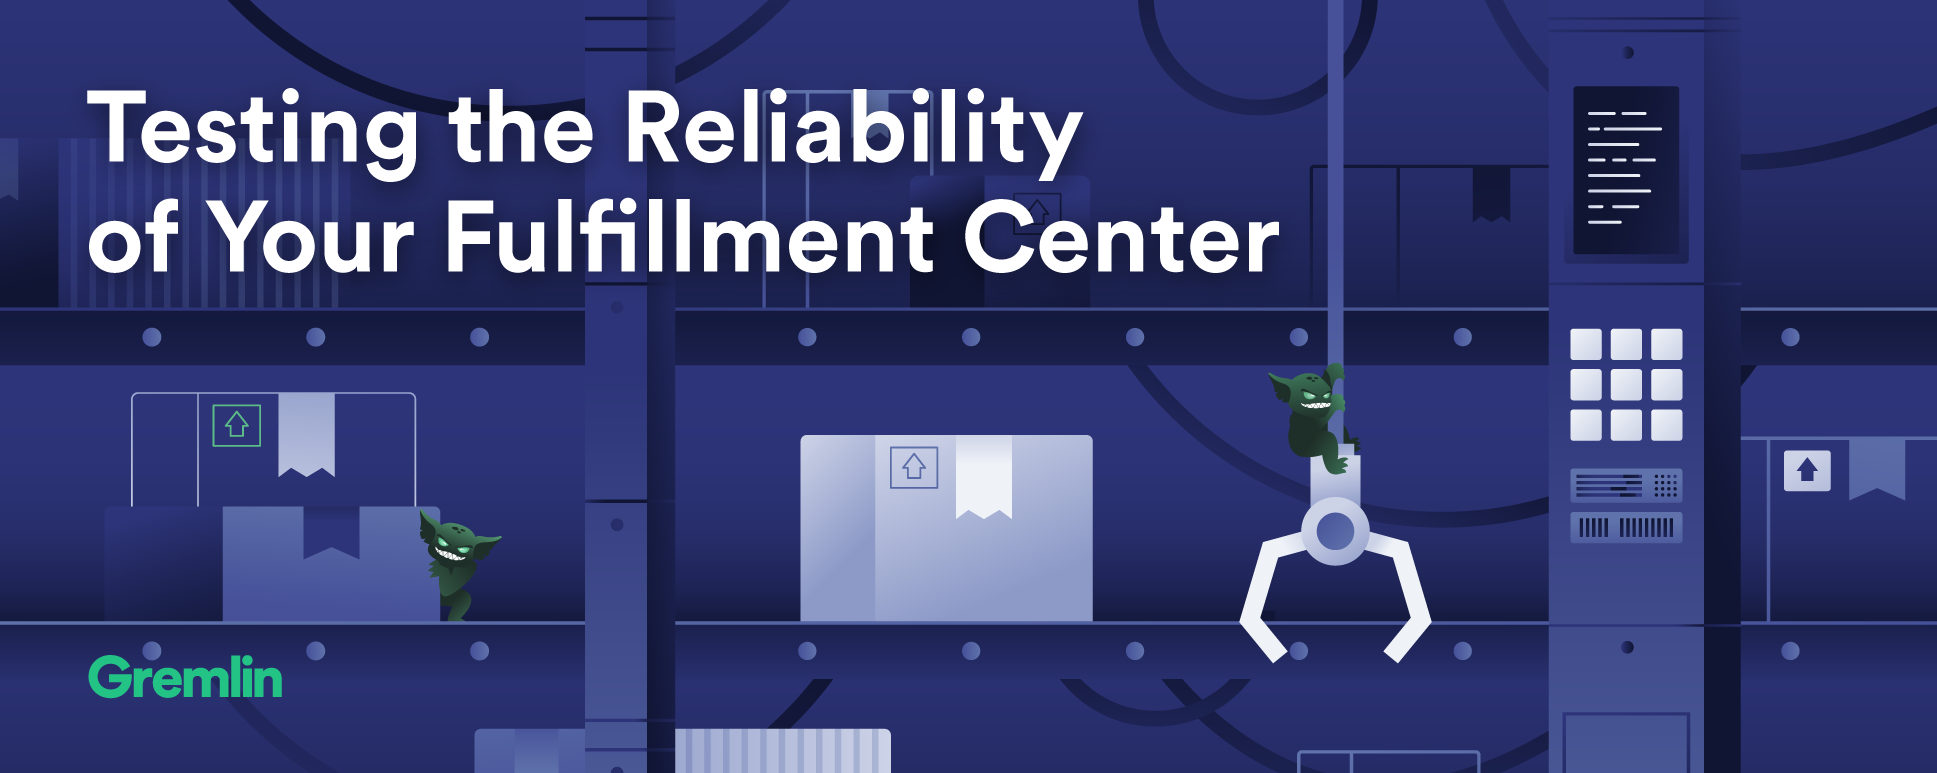 Testing the reliability of your fulfillment center